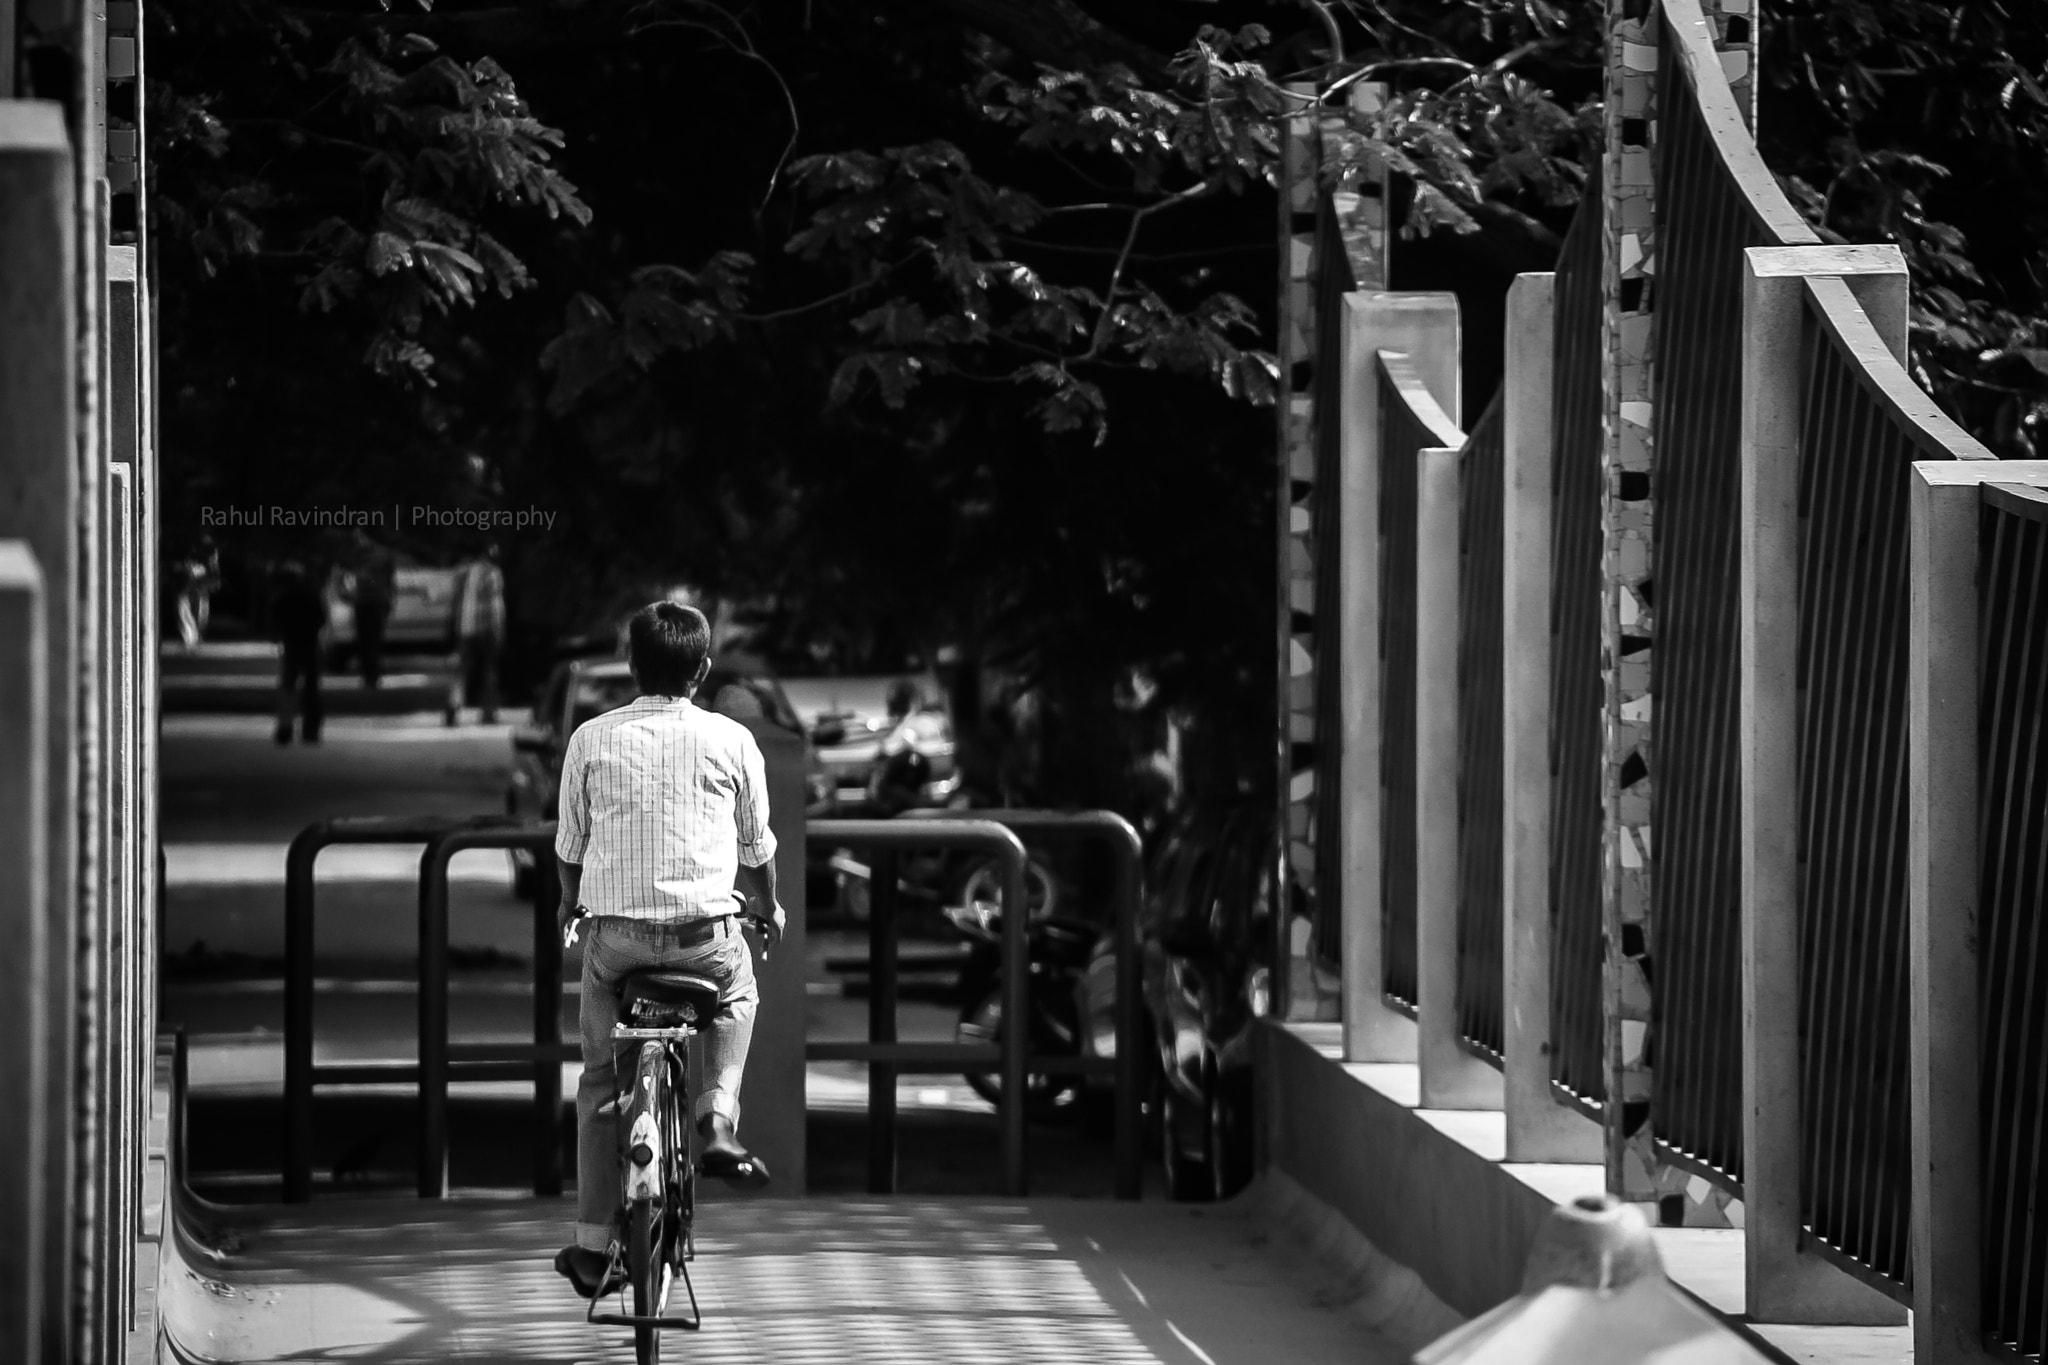 Photograph Lonely Cyclist by Rahul Ravindran on 500px